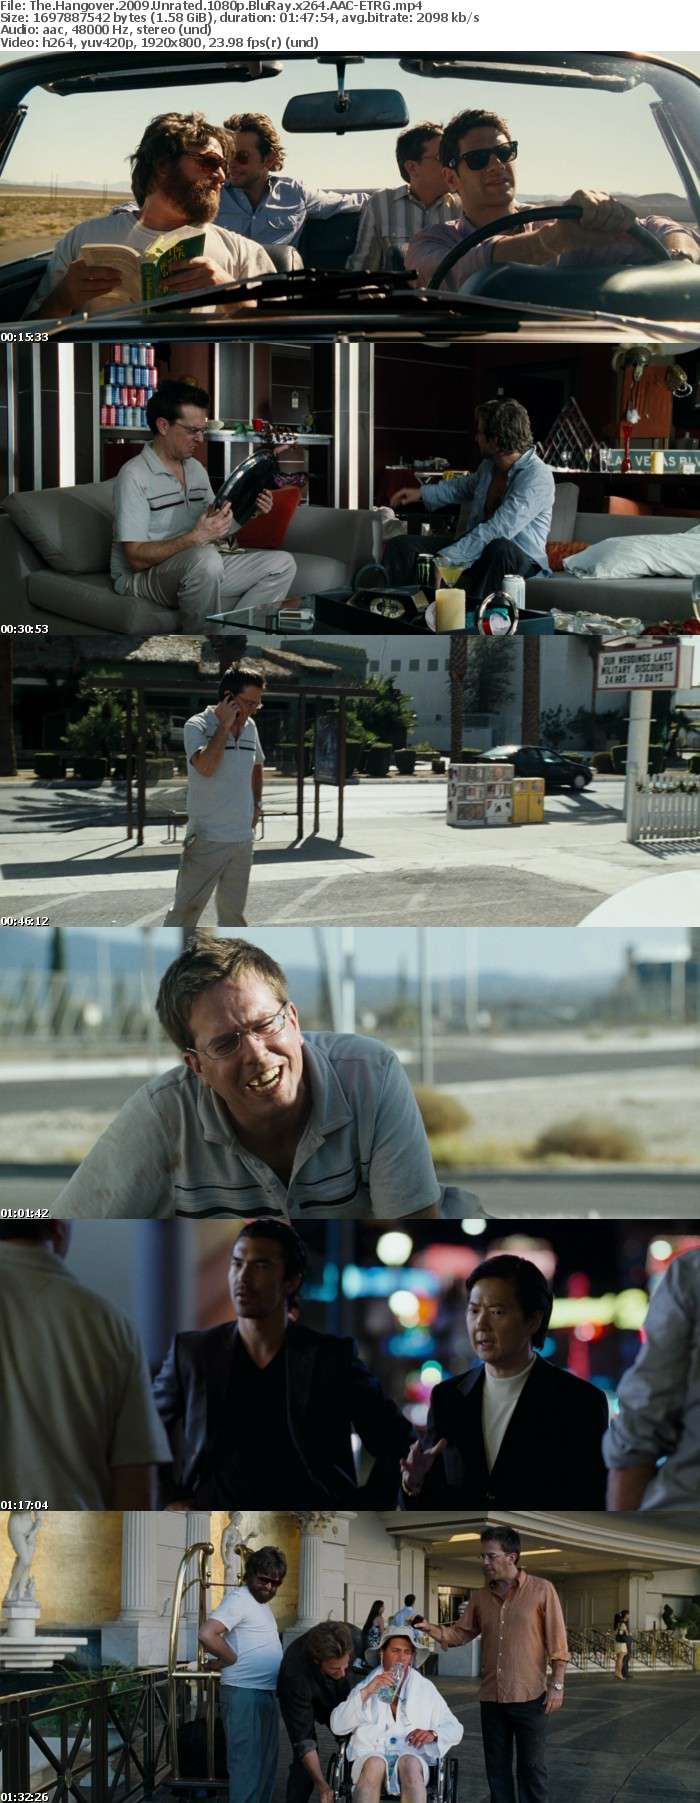 The Hangover 2009 Unrated 1080p BluRay x264 AAC ETRG